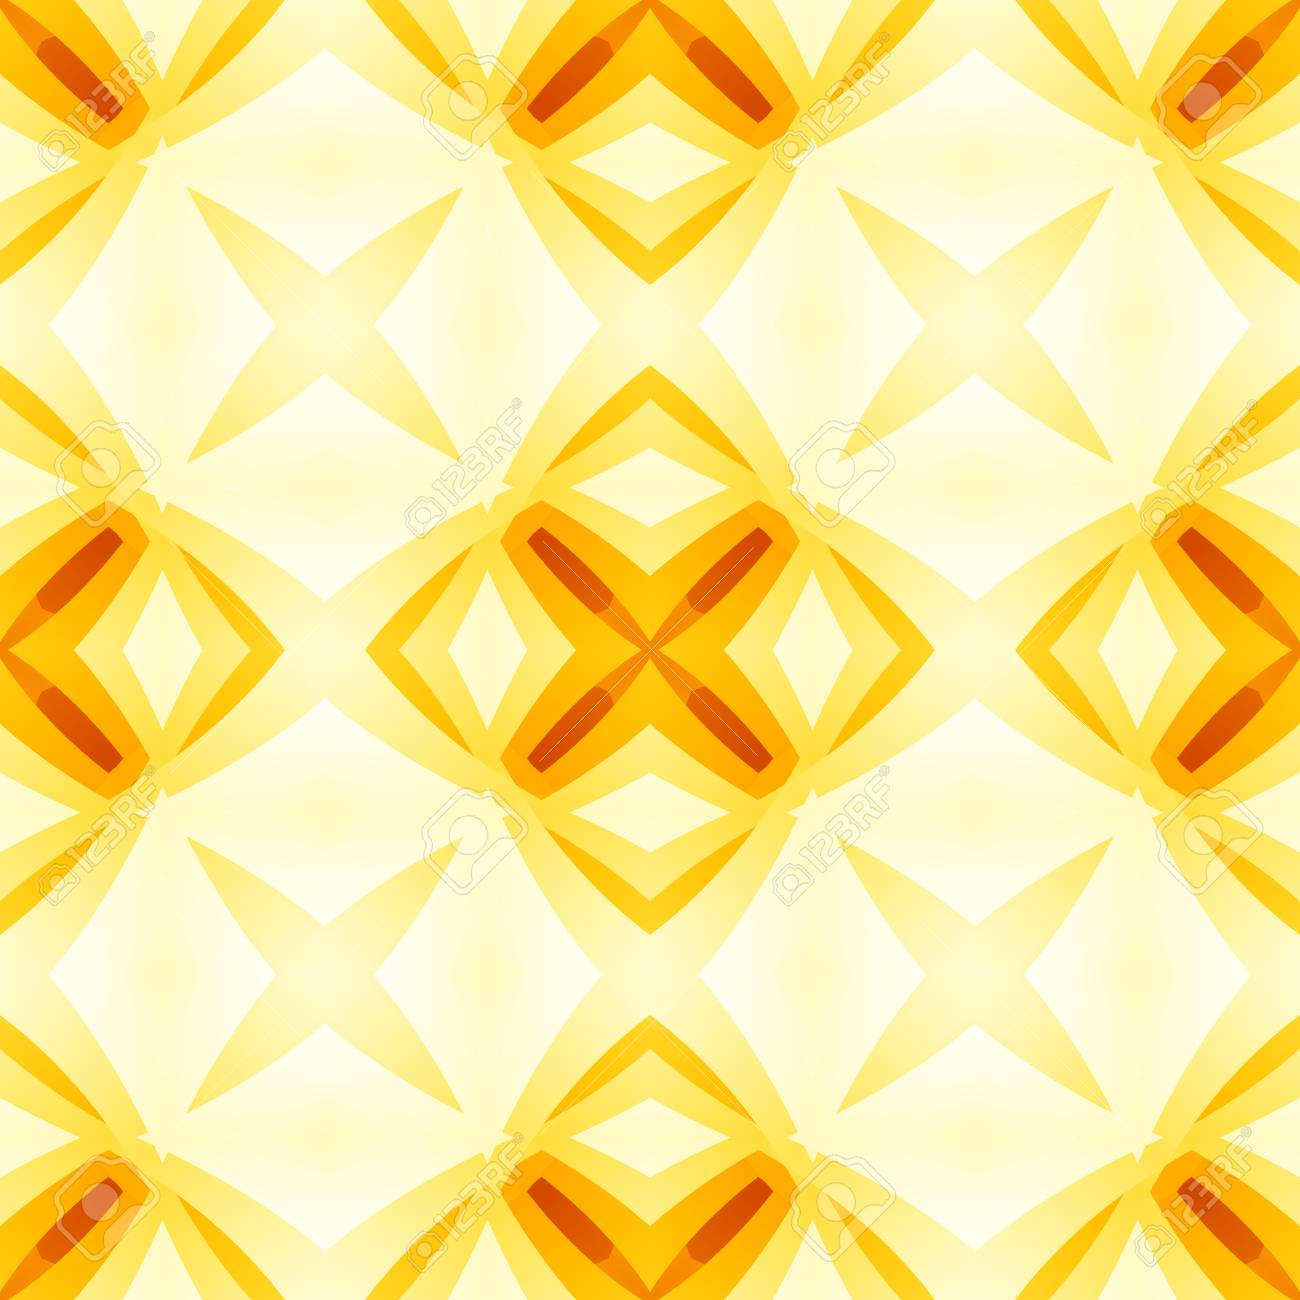 Yellow Orange Red Abstract Texture Bright Seamless Tile Home